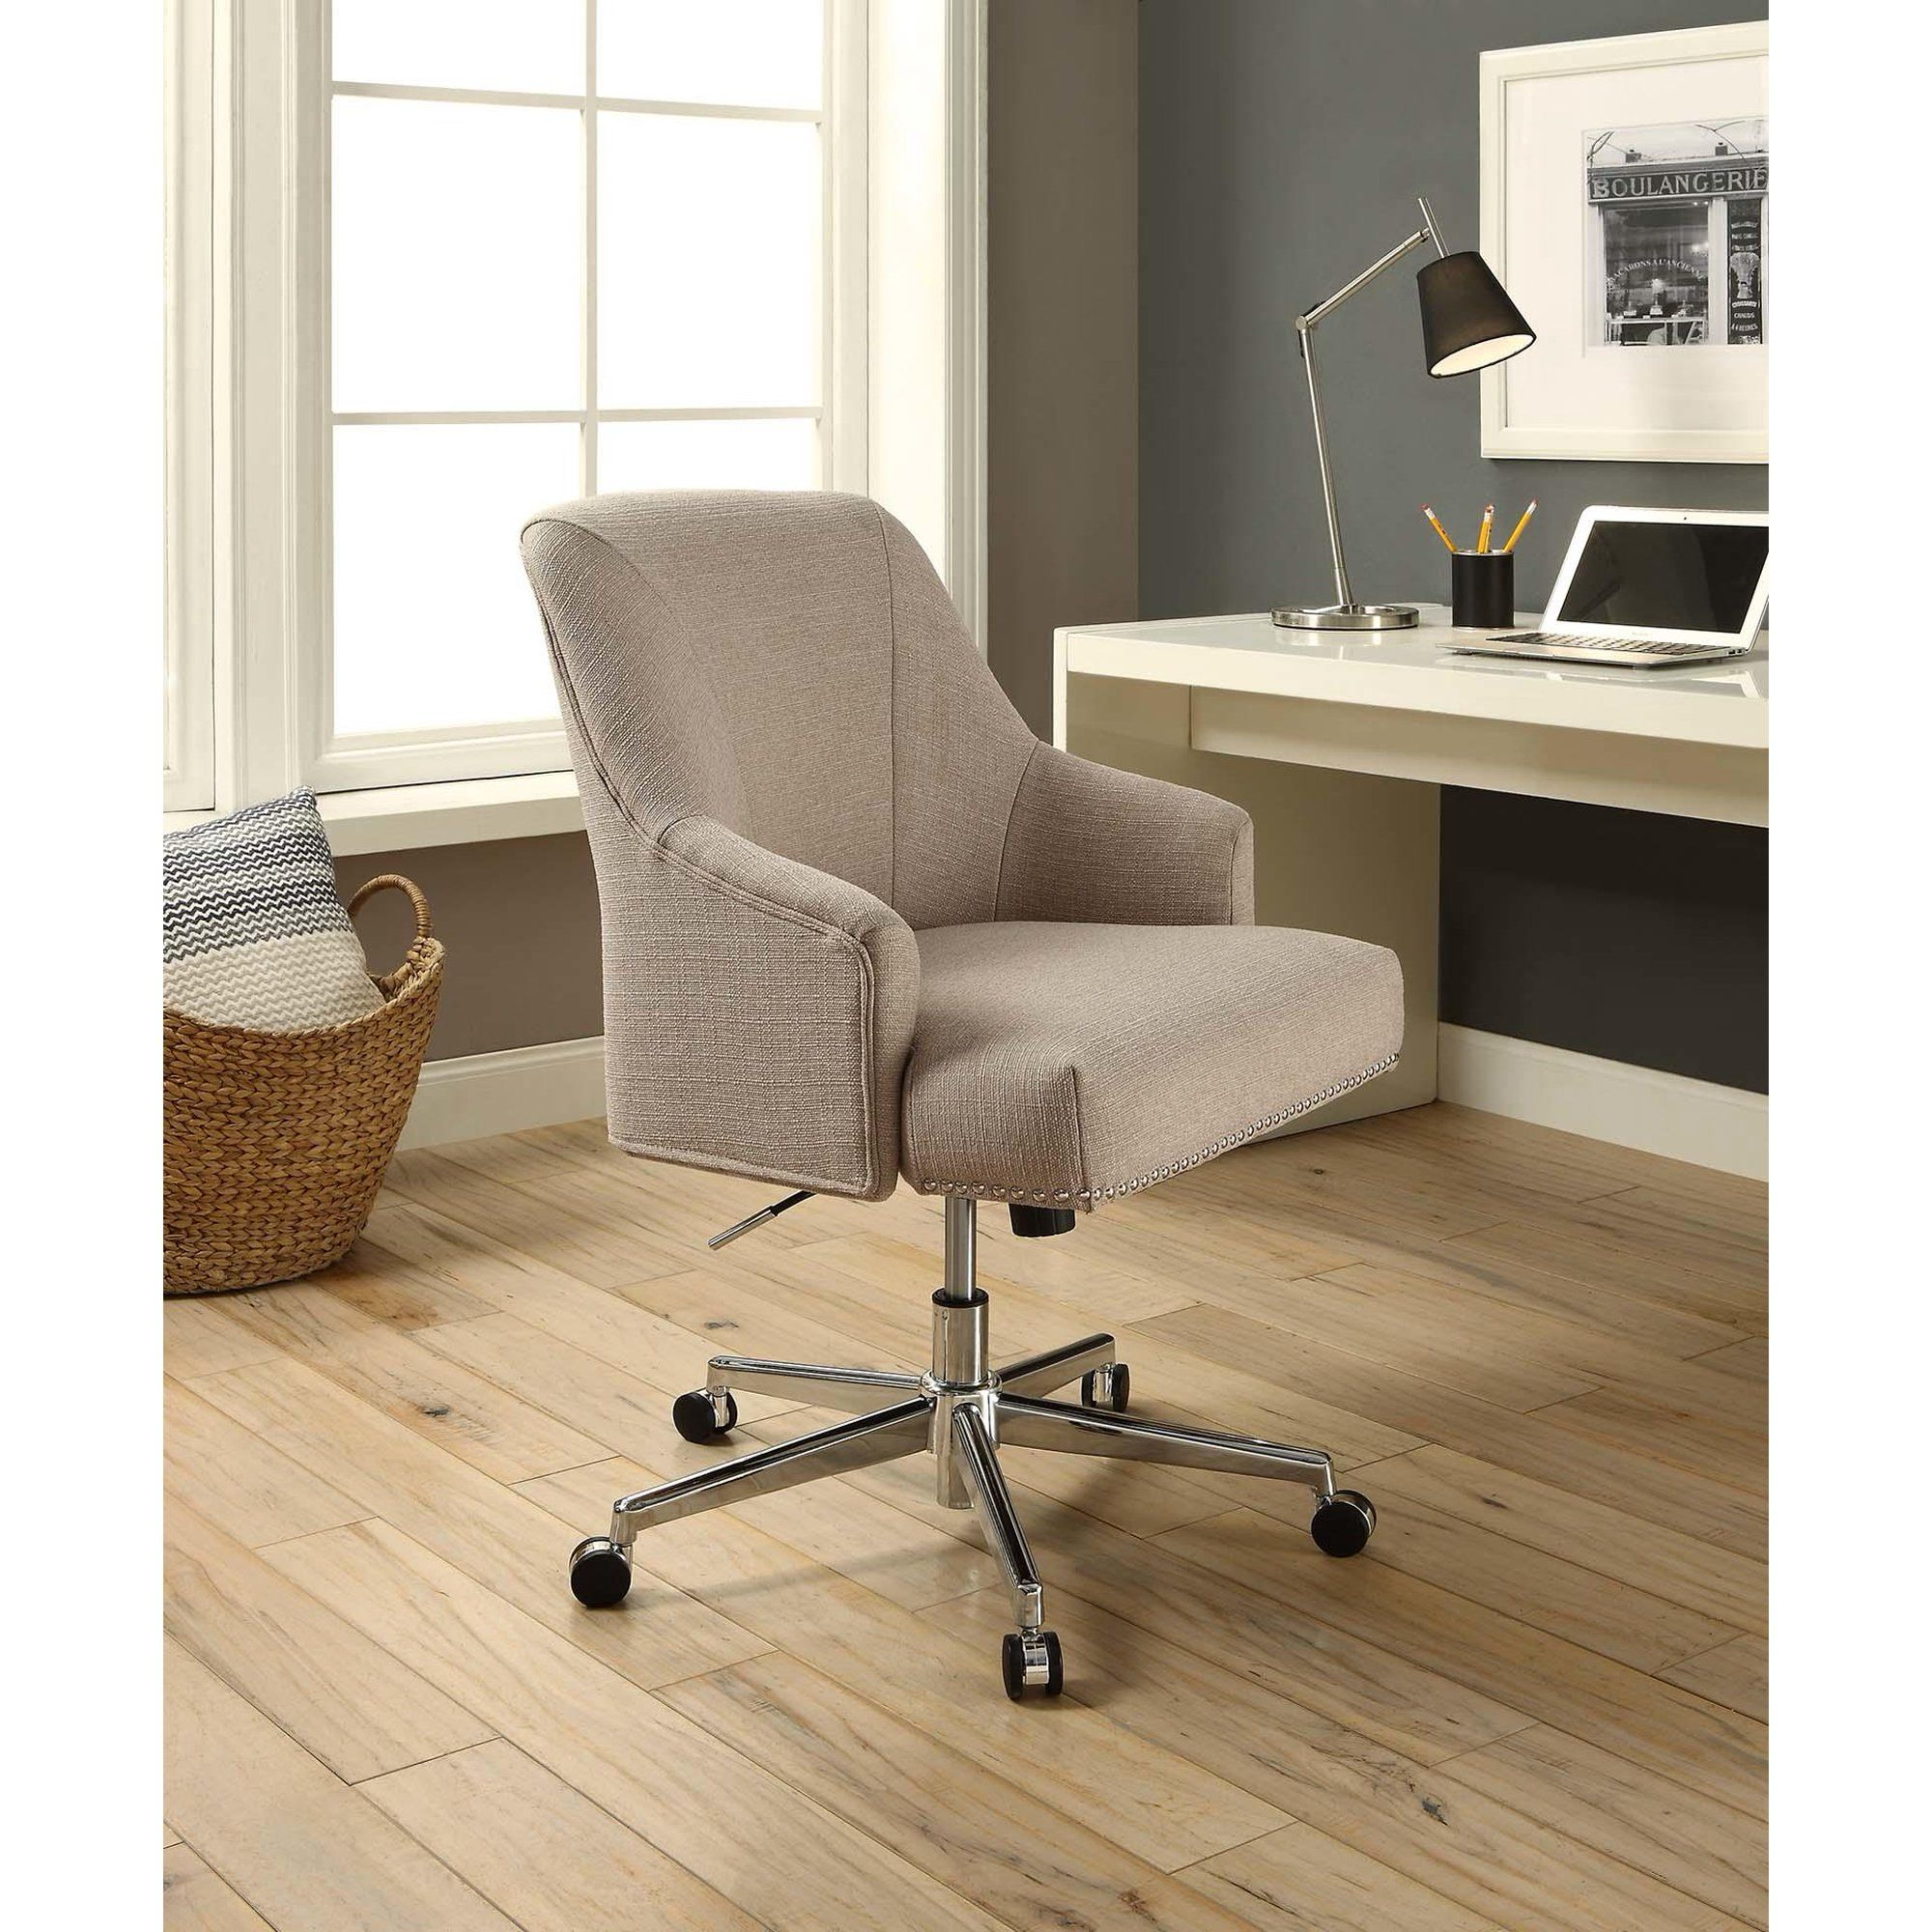 Serta Style Leighton Home Office Chair Beige Twill Fabric Walmart Com In 2020 Home Office Chairs Home Office Chair